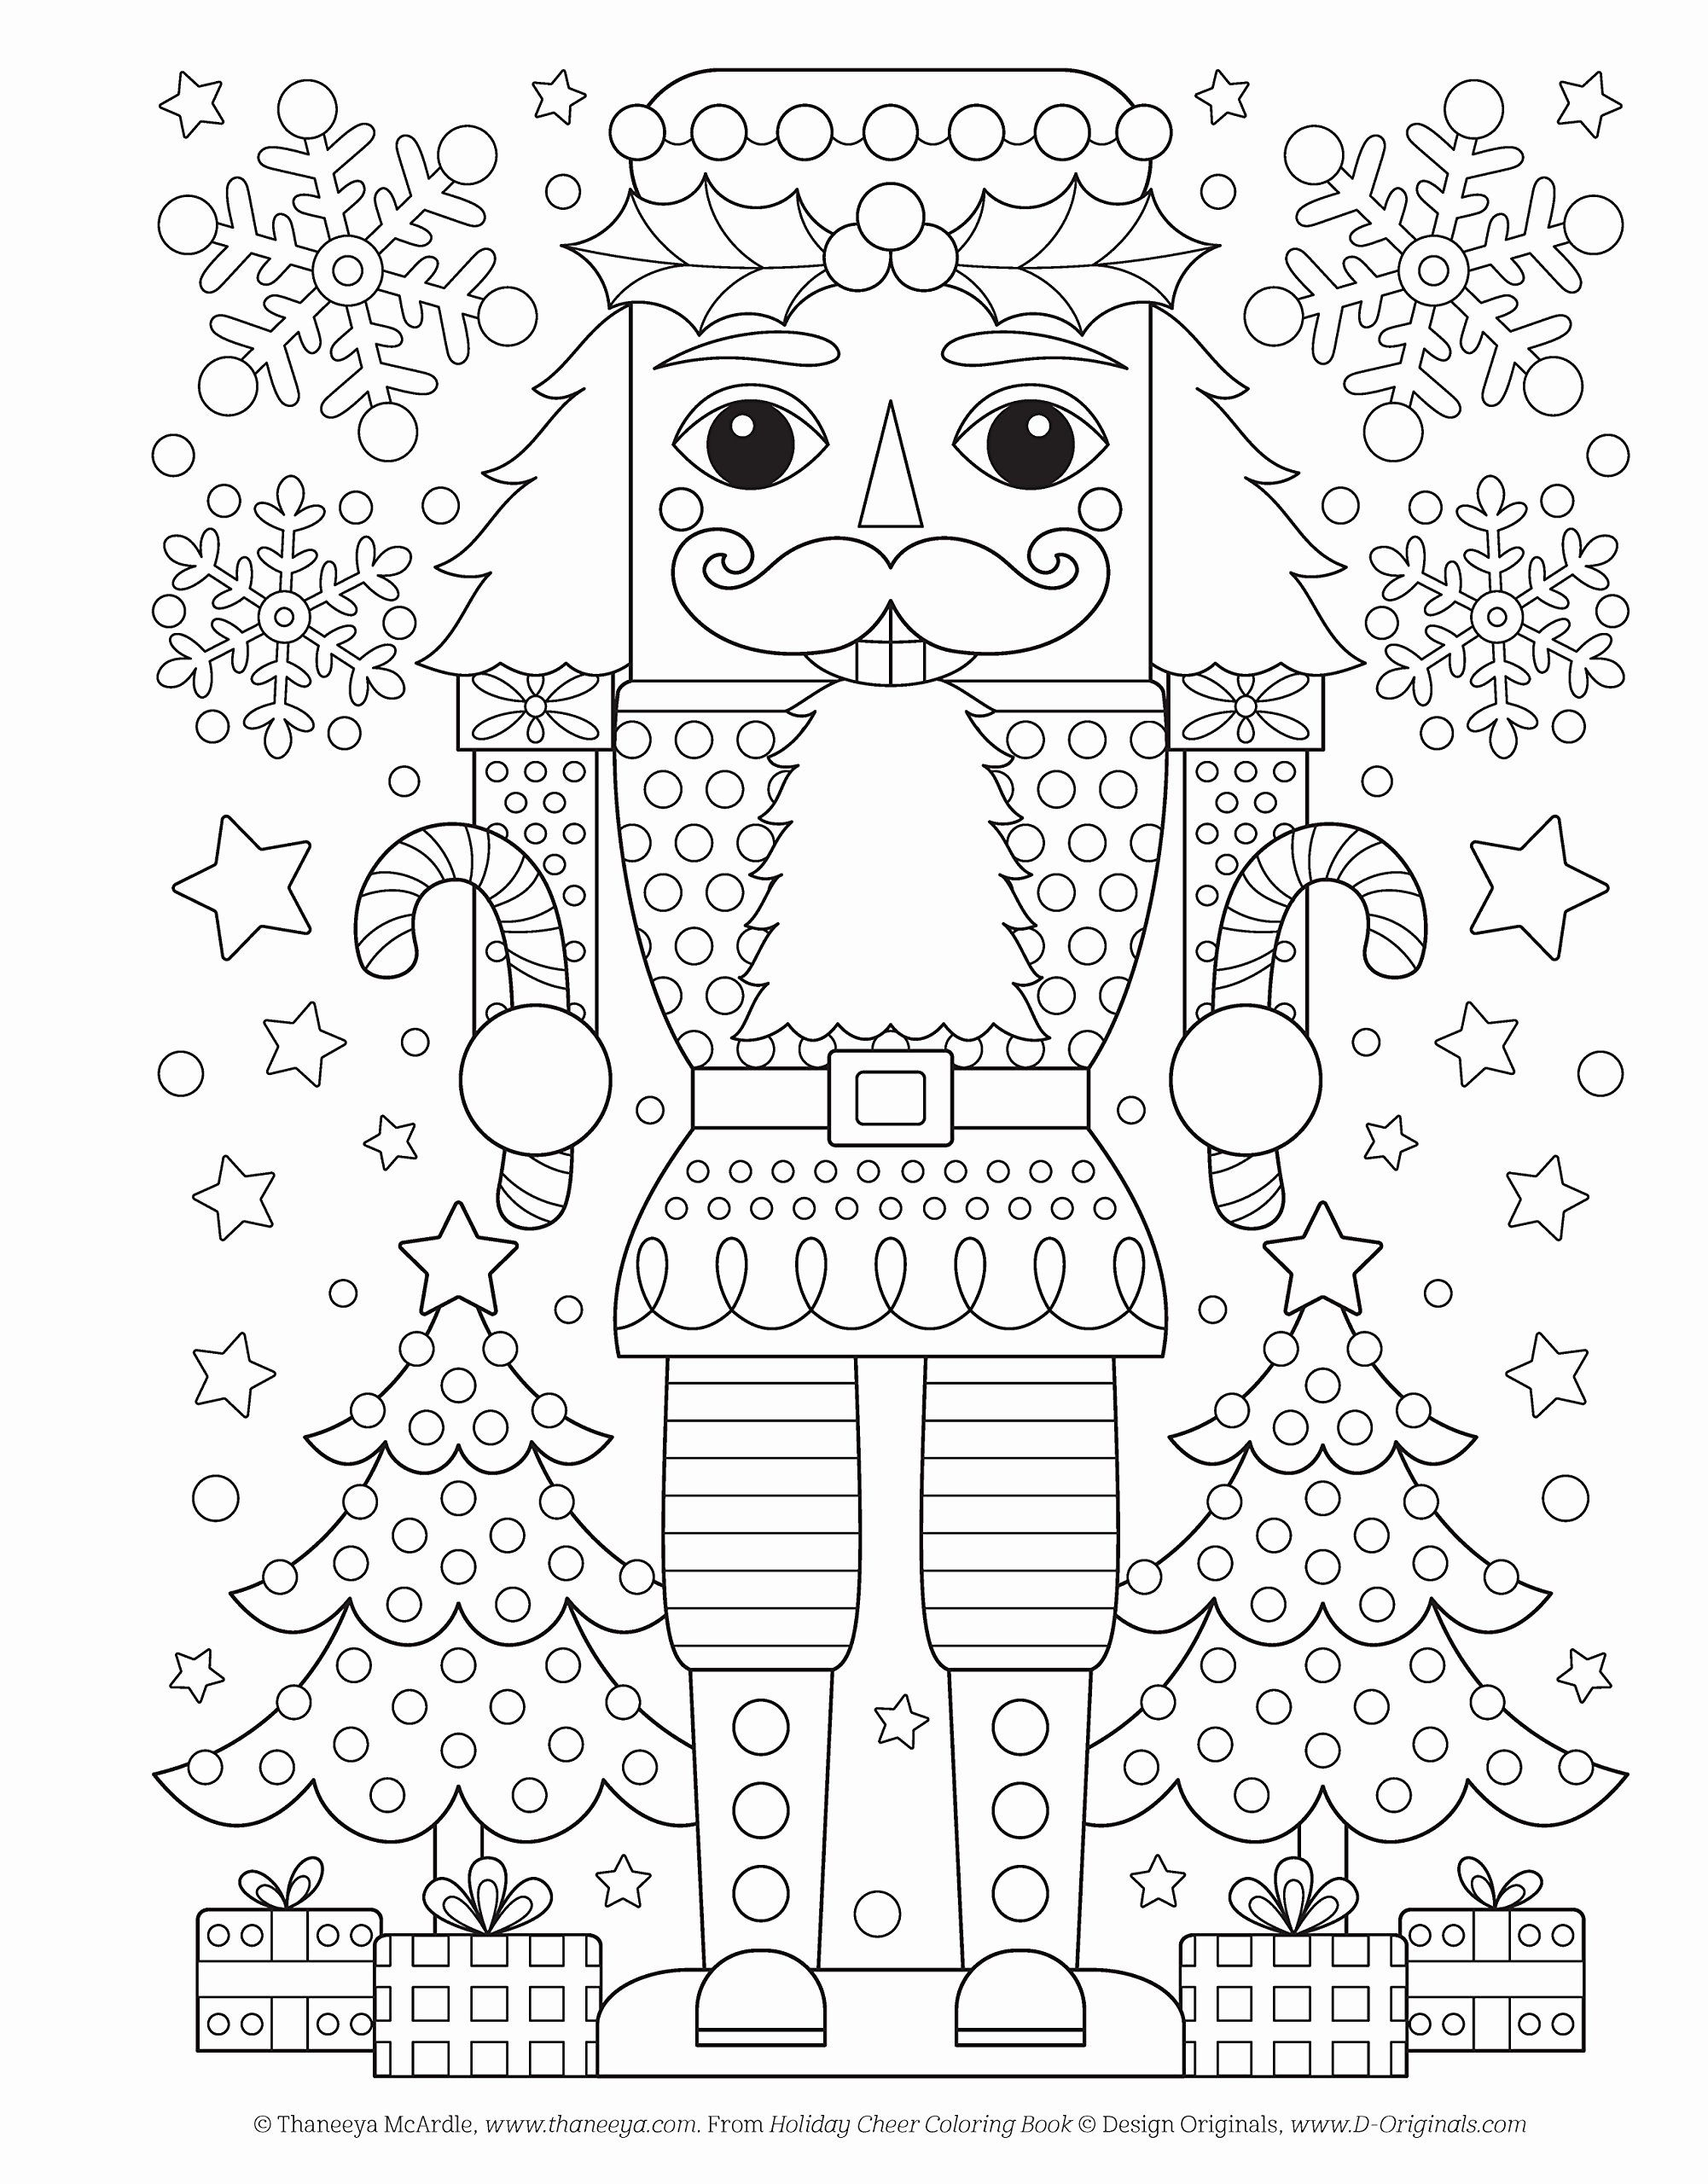 Holiday Coloring Book Pages Luxury Amazon Holiday Cheer Coloring Book Cra In 2021 Printable Christmas Coloring Pages Christmas Coloring Books Christmas Coloring Sheets